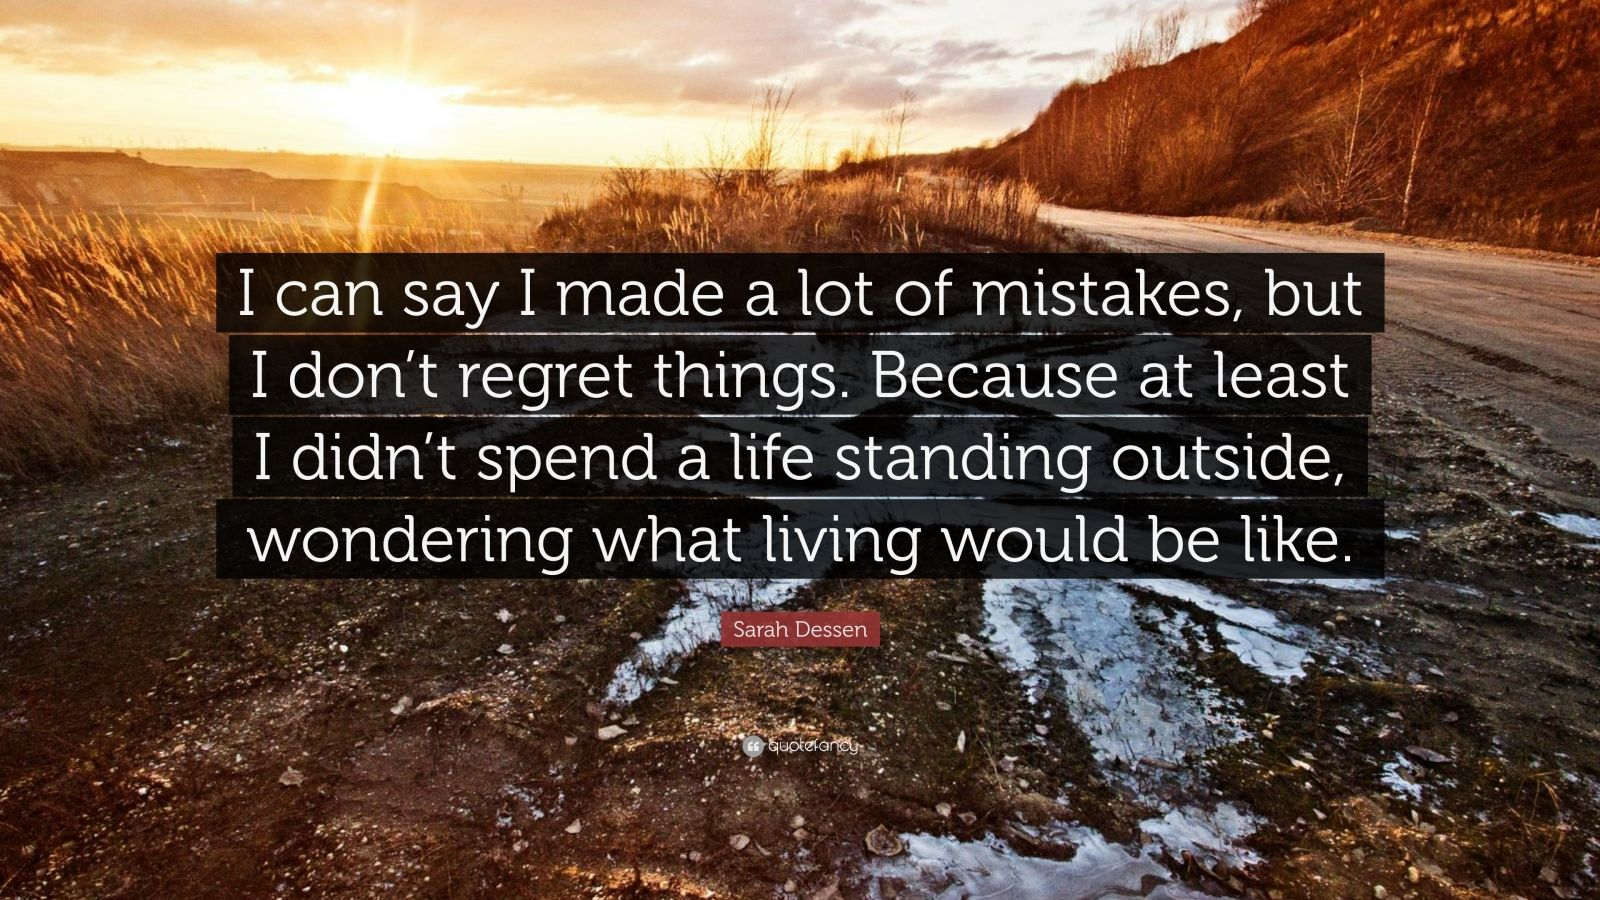 "Sarah Dessen Quote: ""I can say I made a lot of mistakes, but I don't regret things. Because at least I didn't spend a life standing outside, wondering what living would be like."""